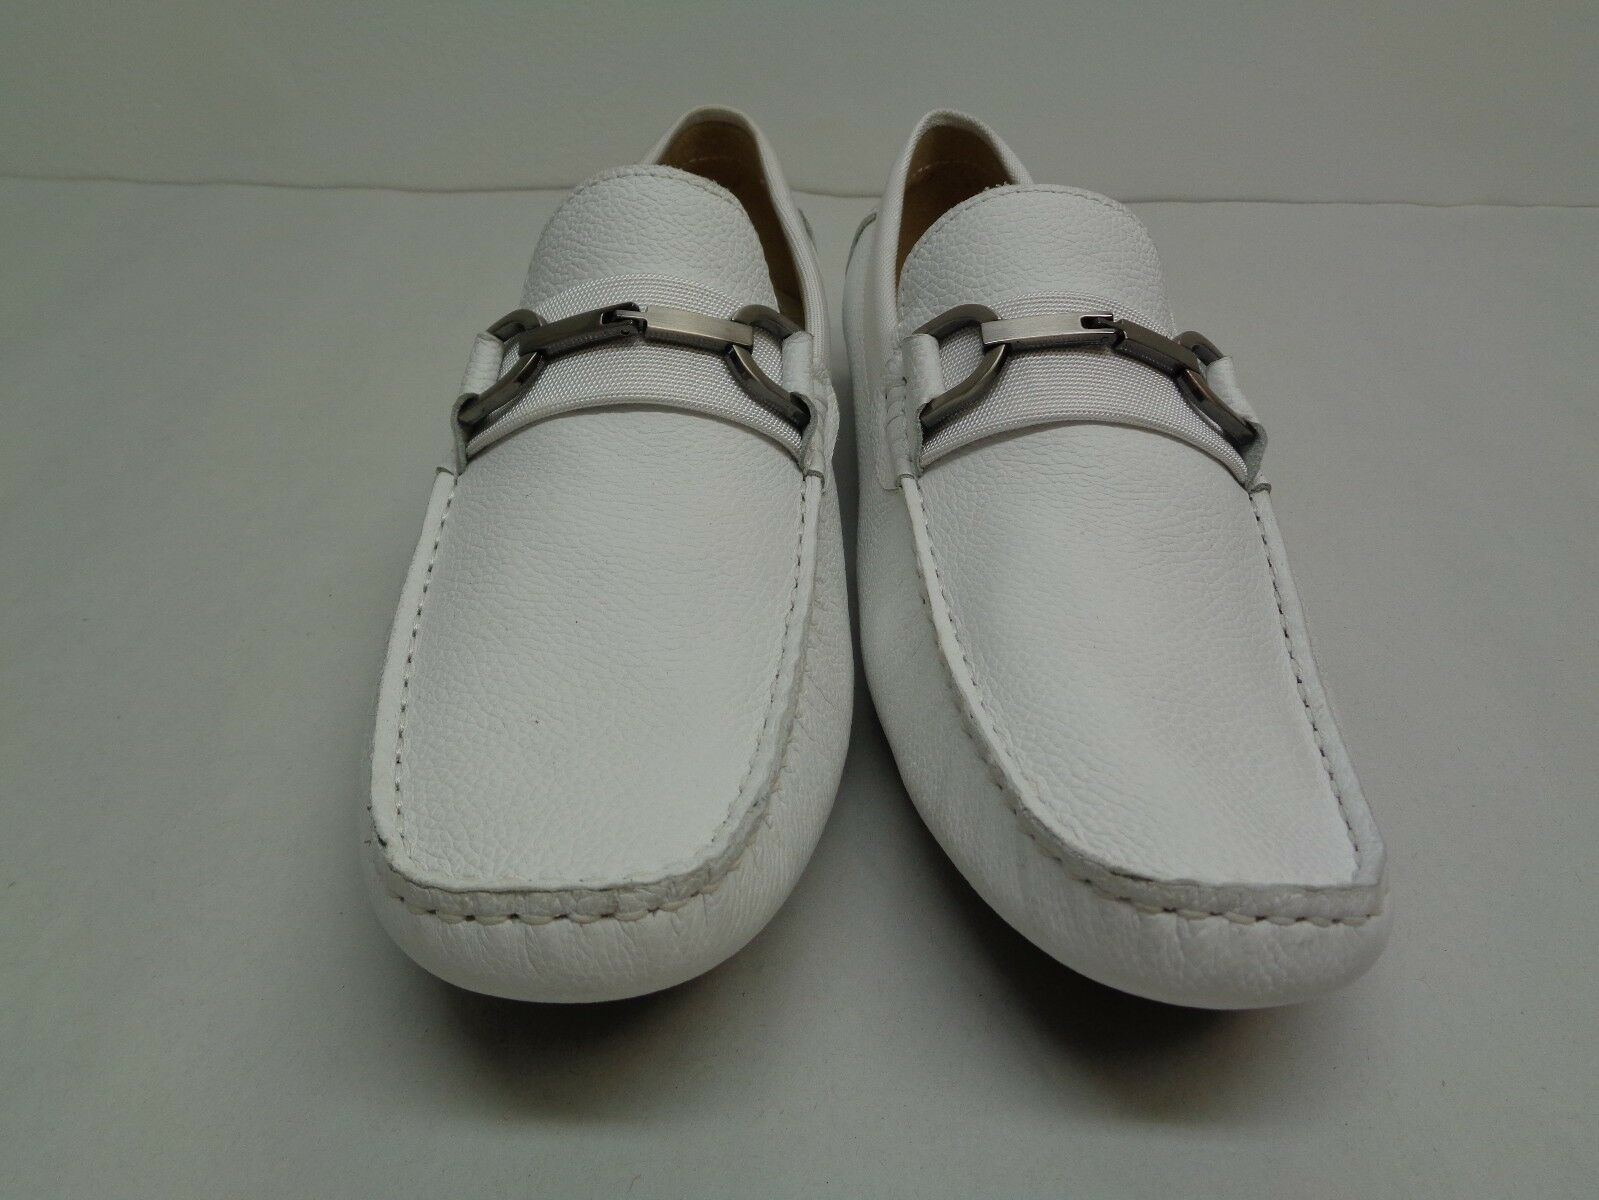 Kenneth Cole Reaction Größe 7 SOUND-S GOOD Weiß Uomo Leder Loafers New  Uomo Weiß Schuhes e00ebc